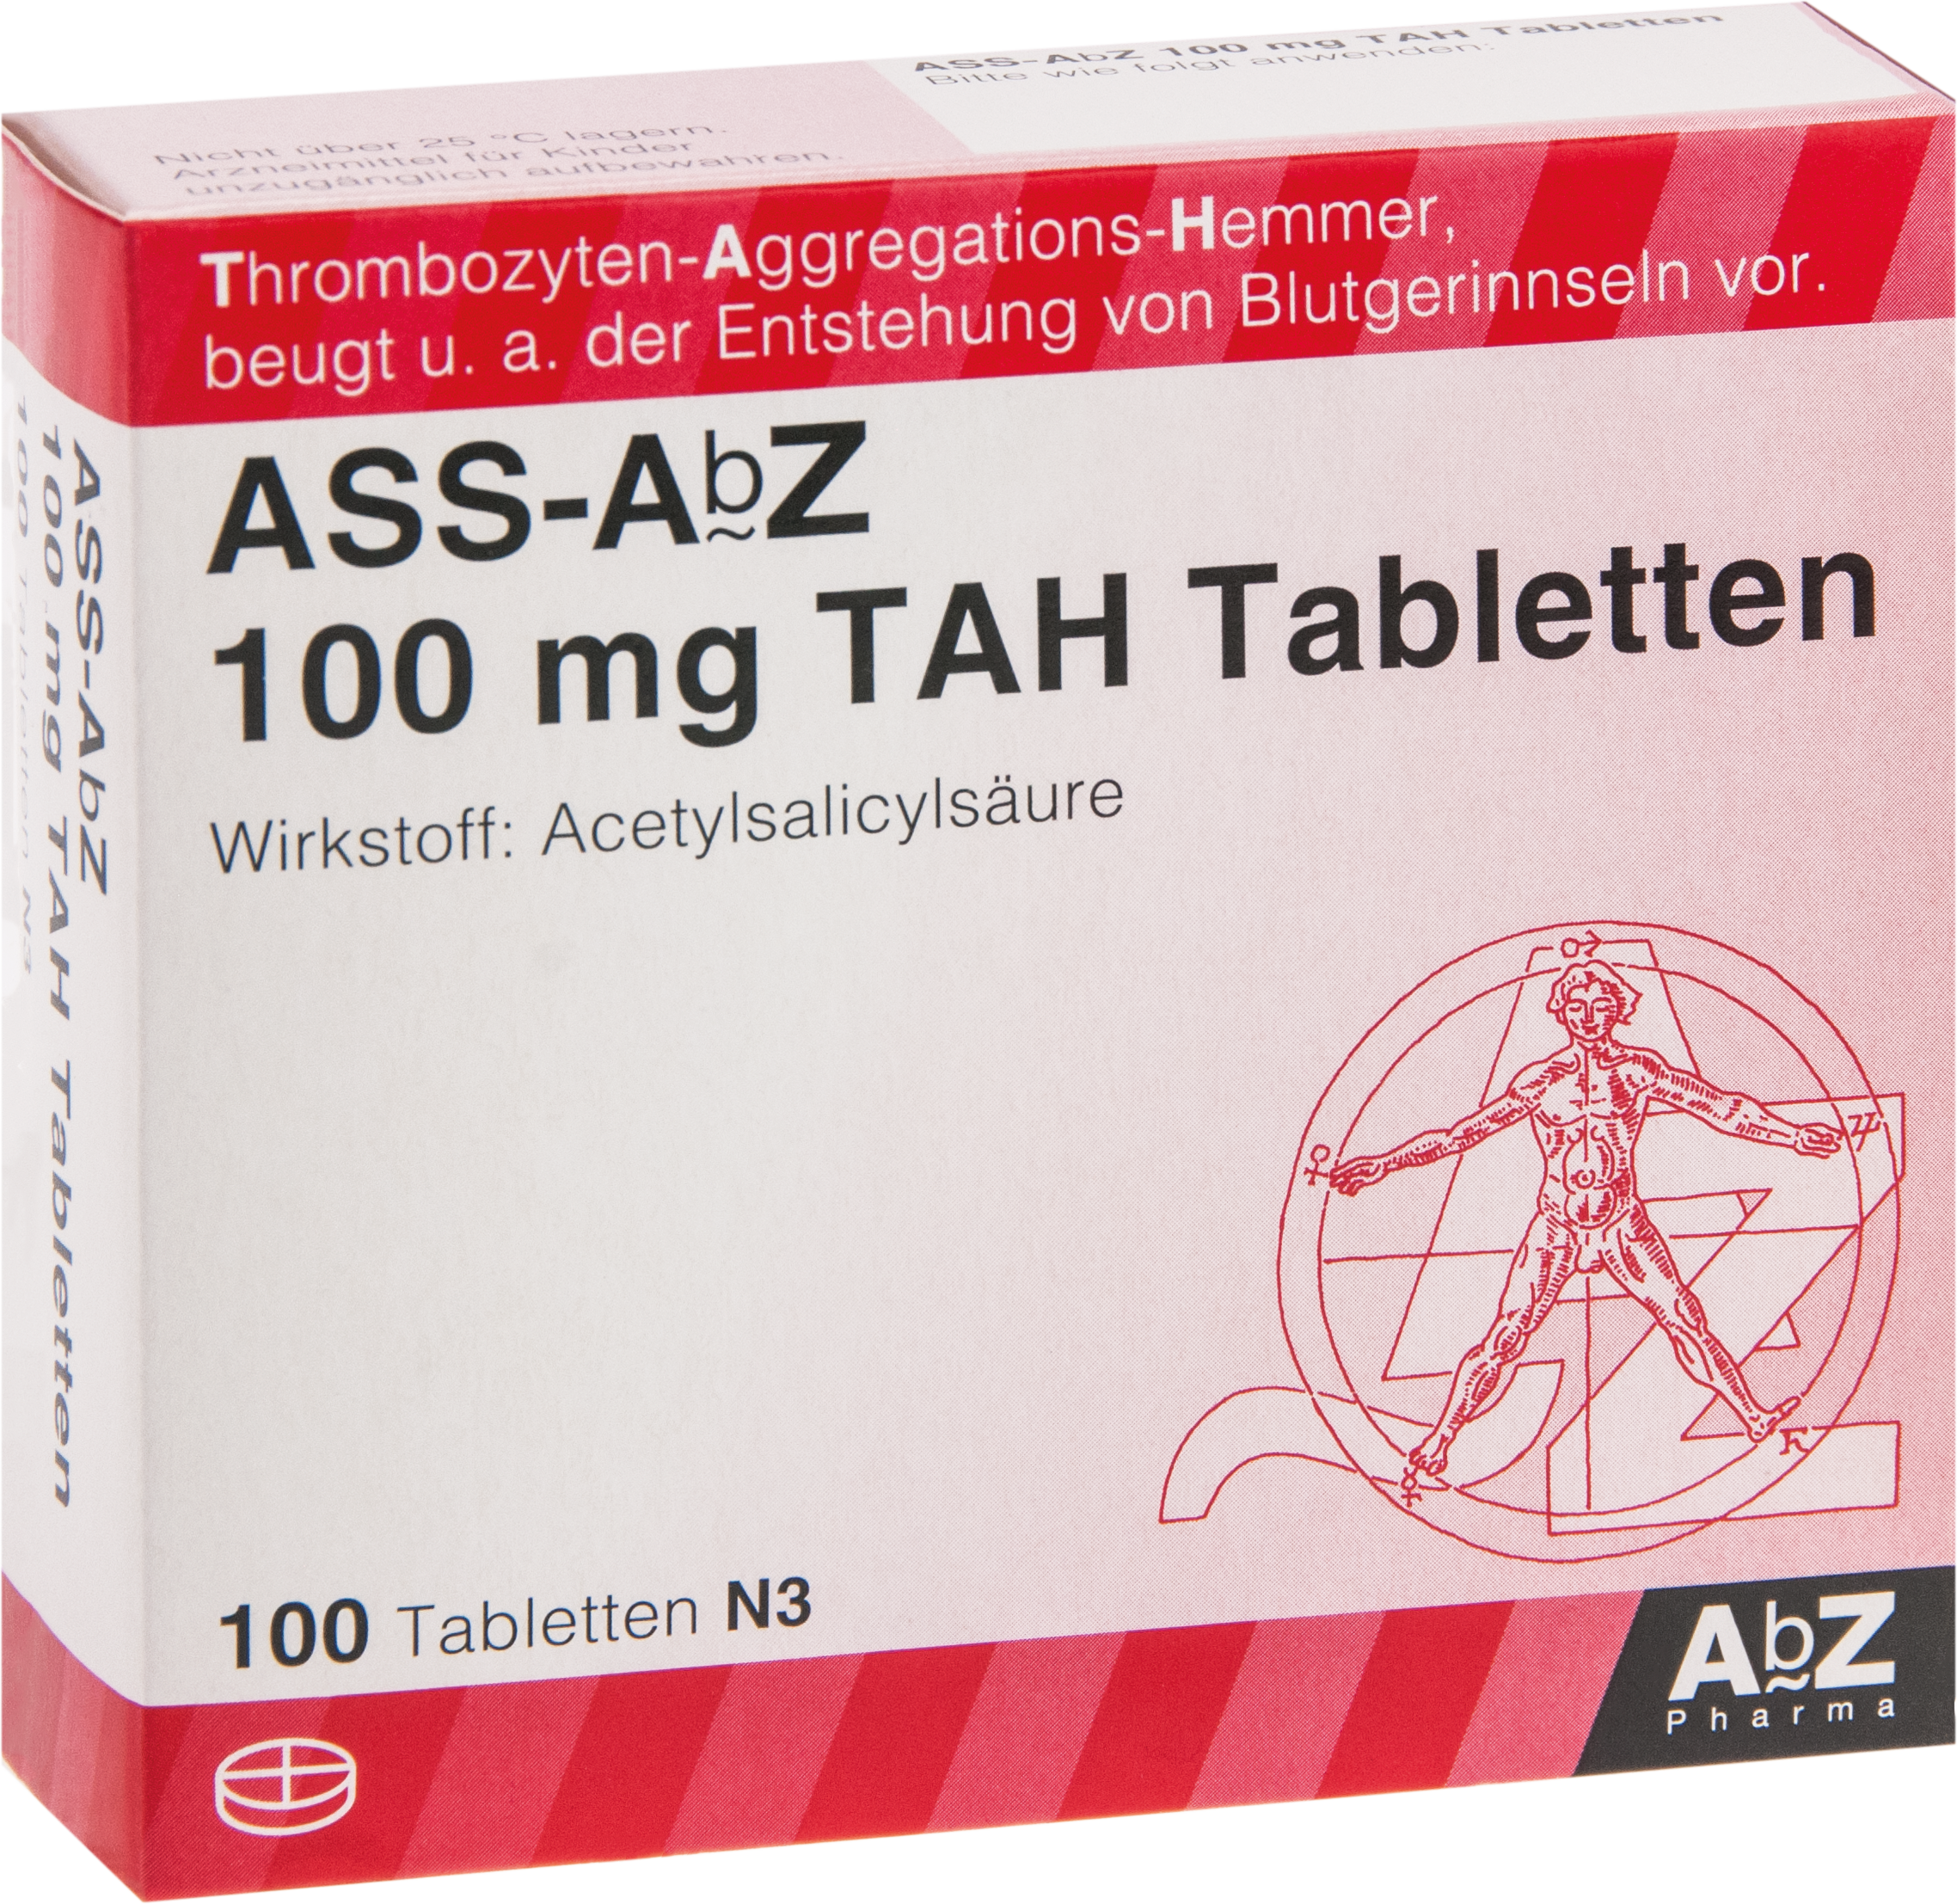 ASS-AbZ 100 mg TAH Tabletten